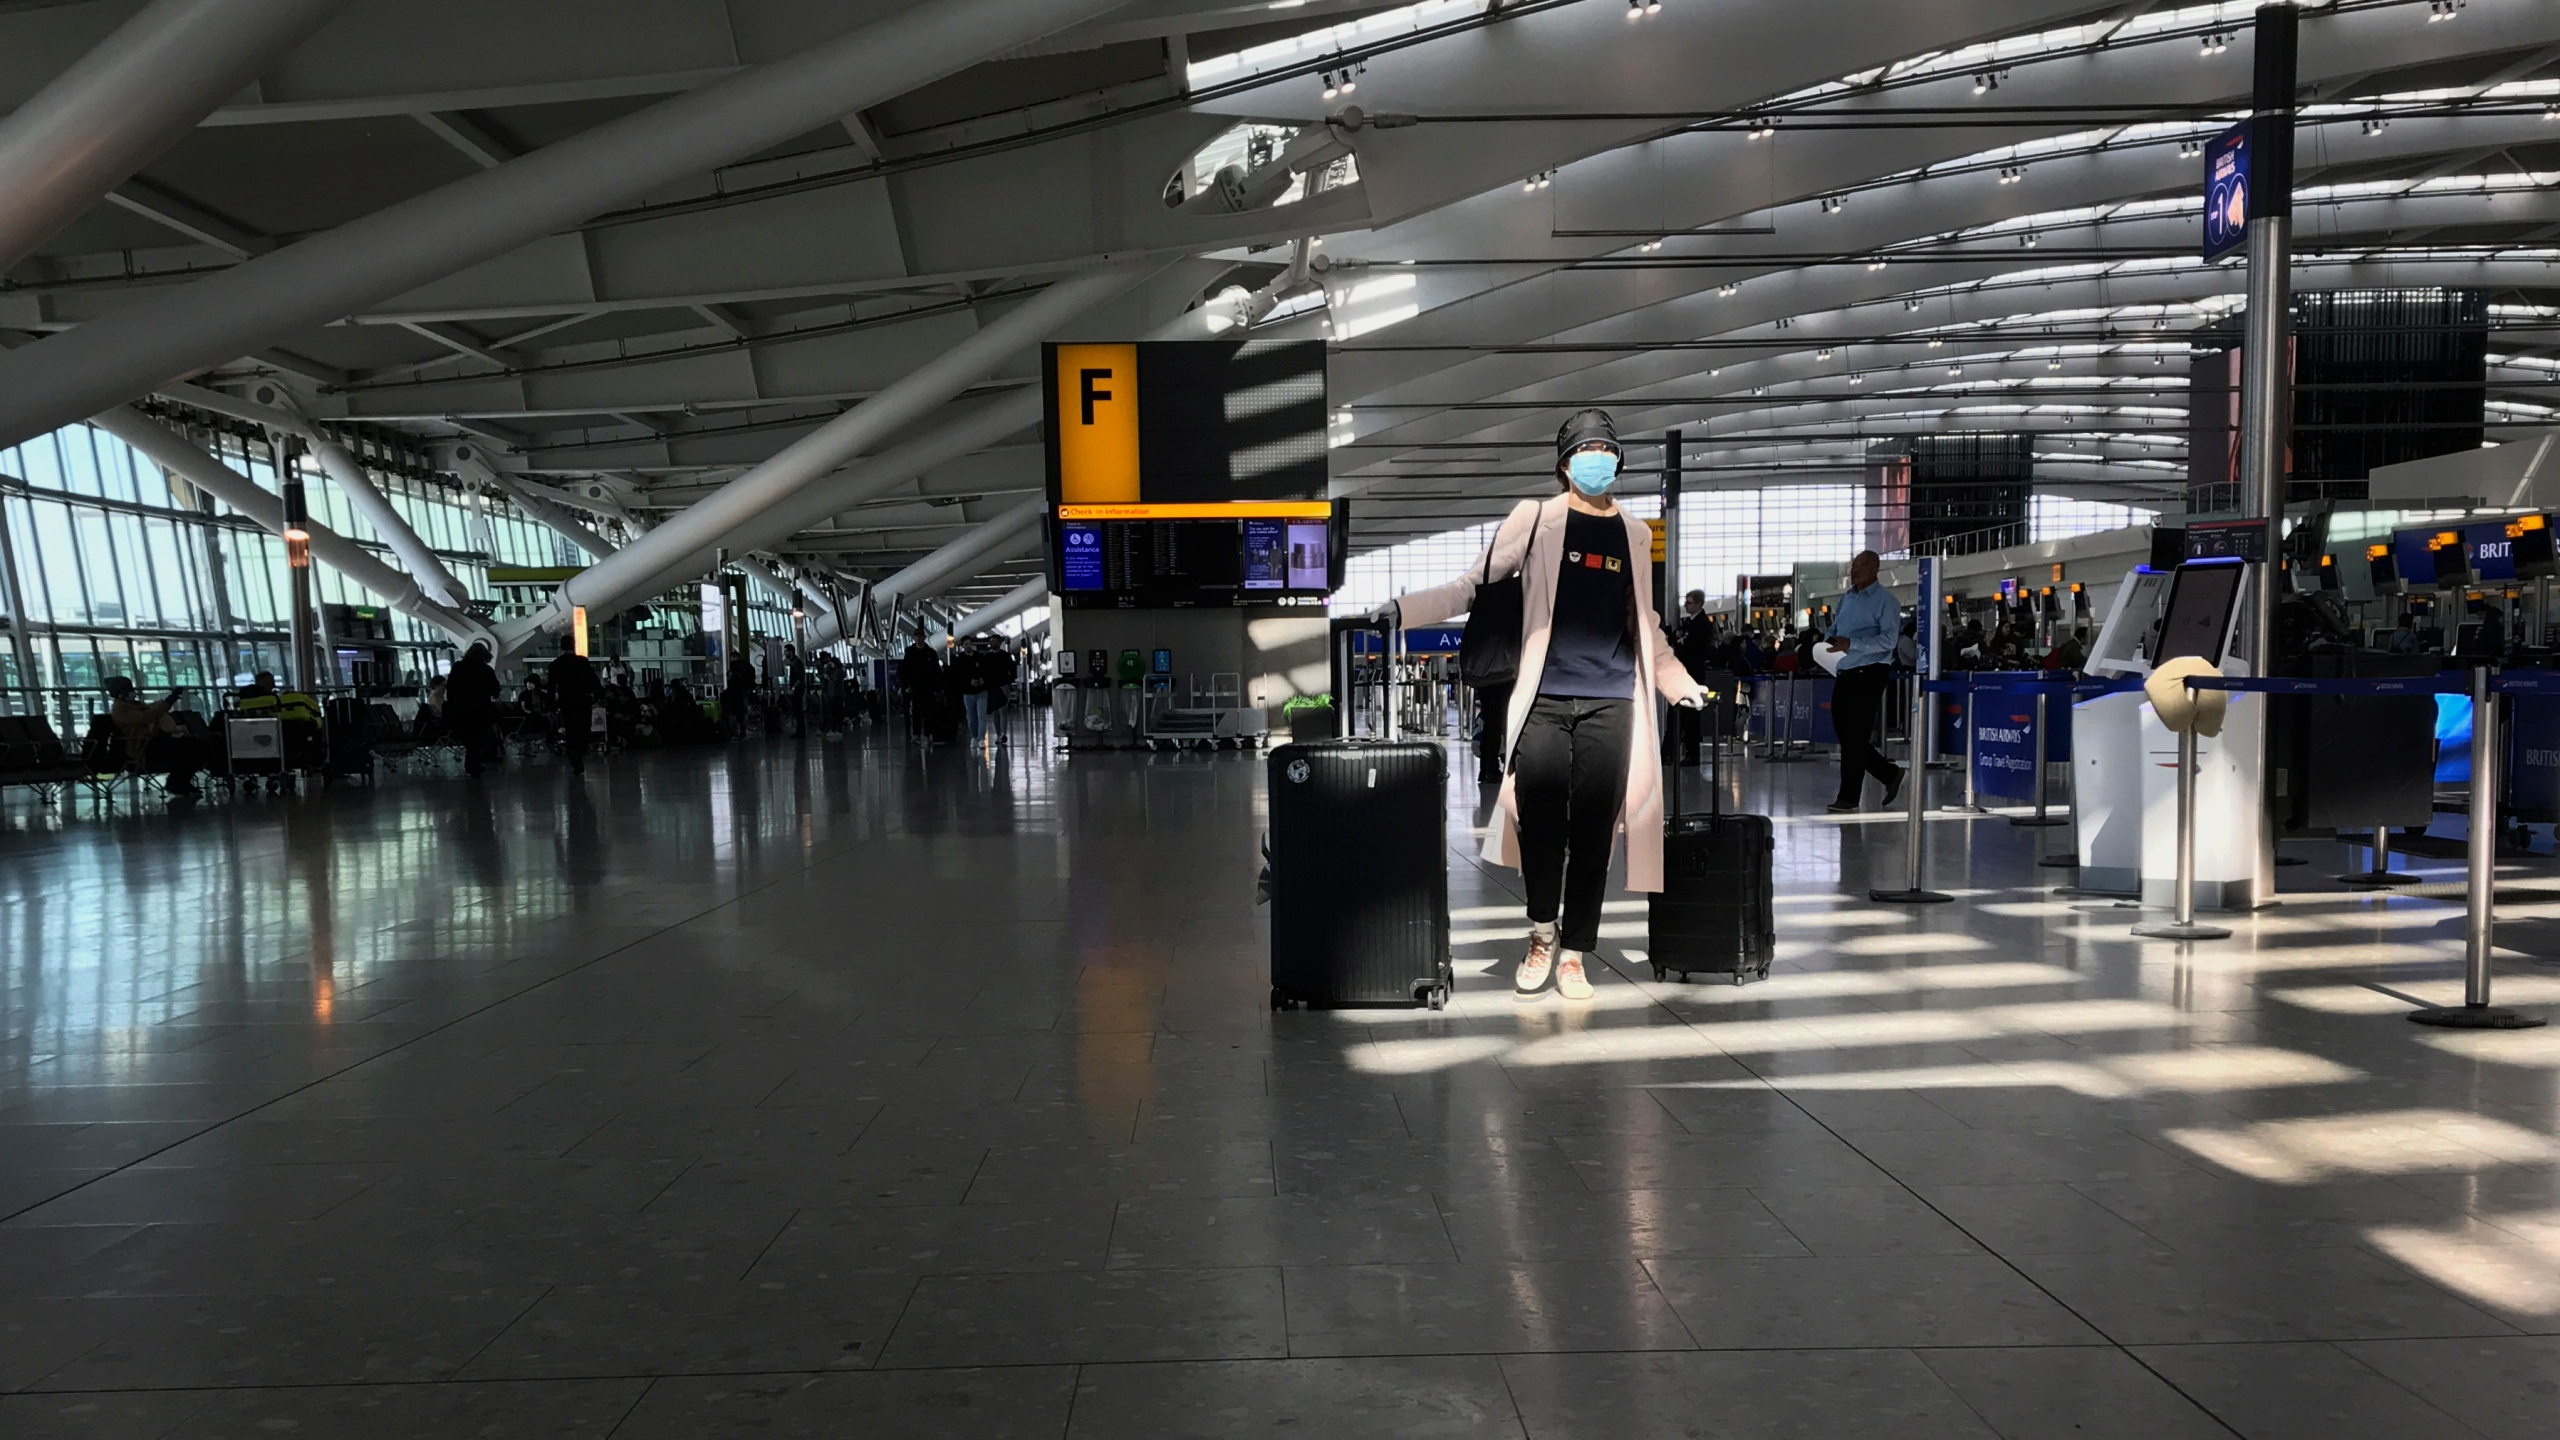 In this Tuesday, March 24, 2020 file photo, a woman wears a mask as she walks through a quieter than usual Heathrow Airport Terminal 5, in London. Air traffic is down 92% this year as travelers worry about catching COVID-19 and government travel bans and quarantine rules make planning difficult. One thing airlines believe could help is to have rapid virus tests of all passengers before departure. (AP Photo/Kirsty Wigglesworth, File)